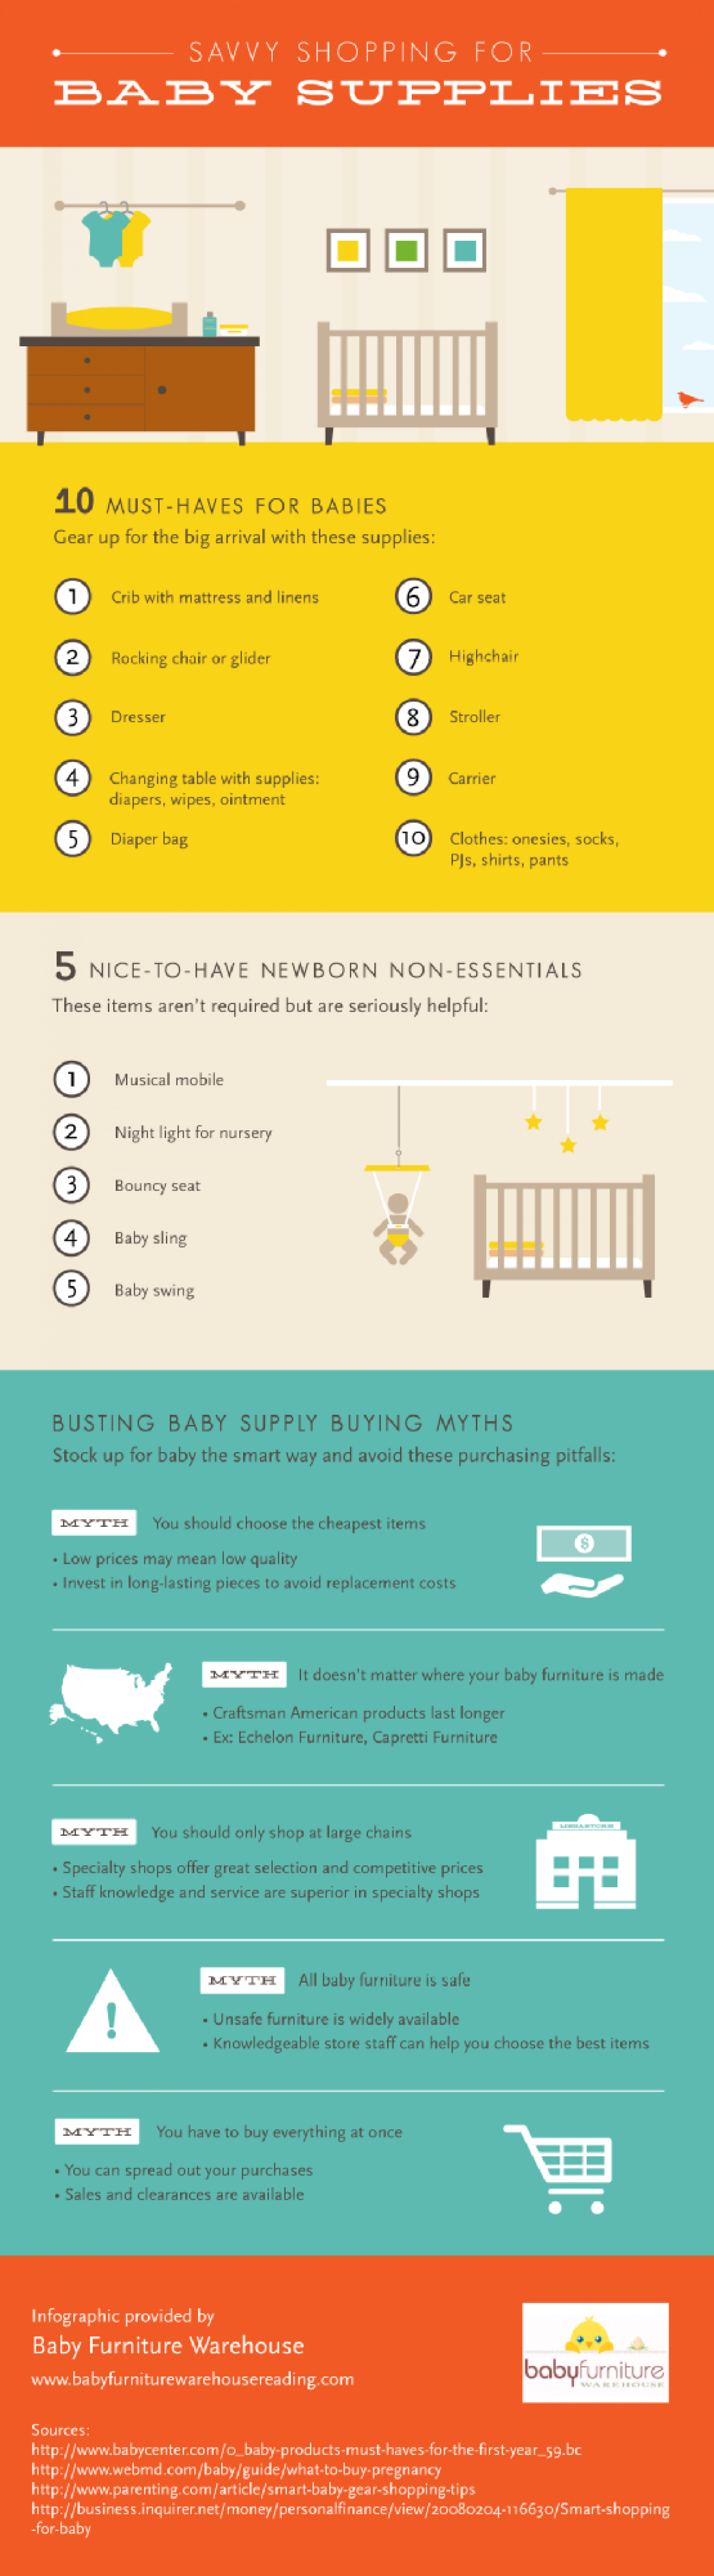 Savvy Shopping for Baby Supplies Infographic